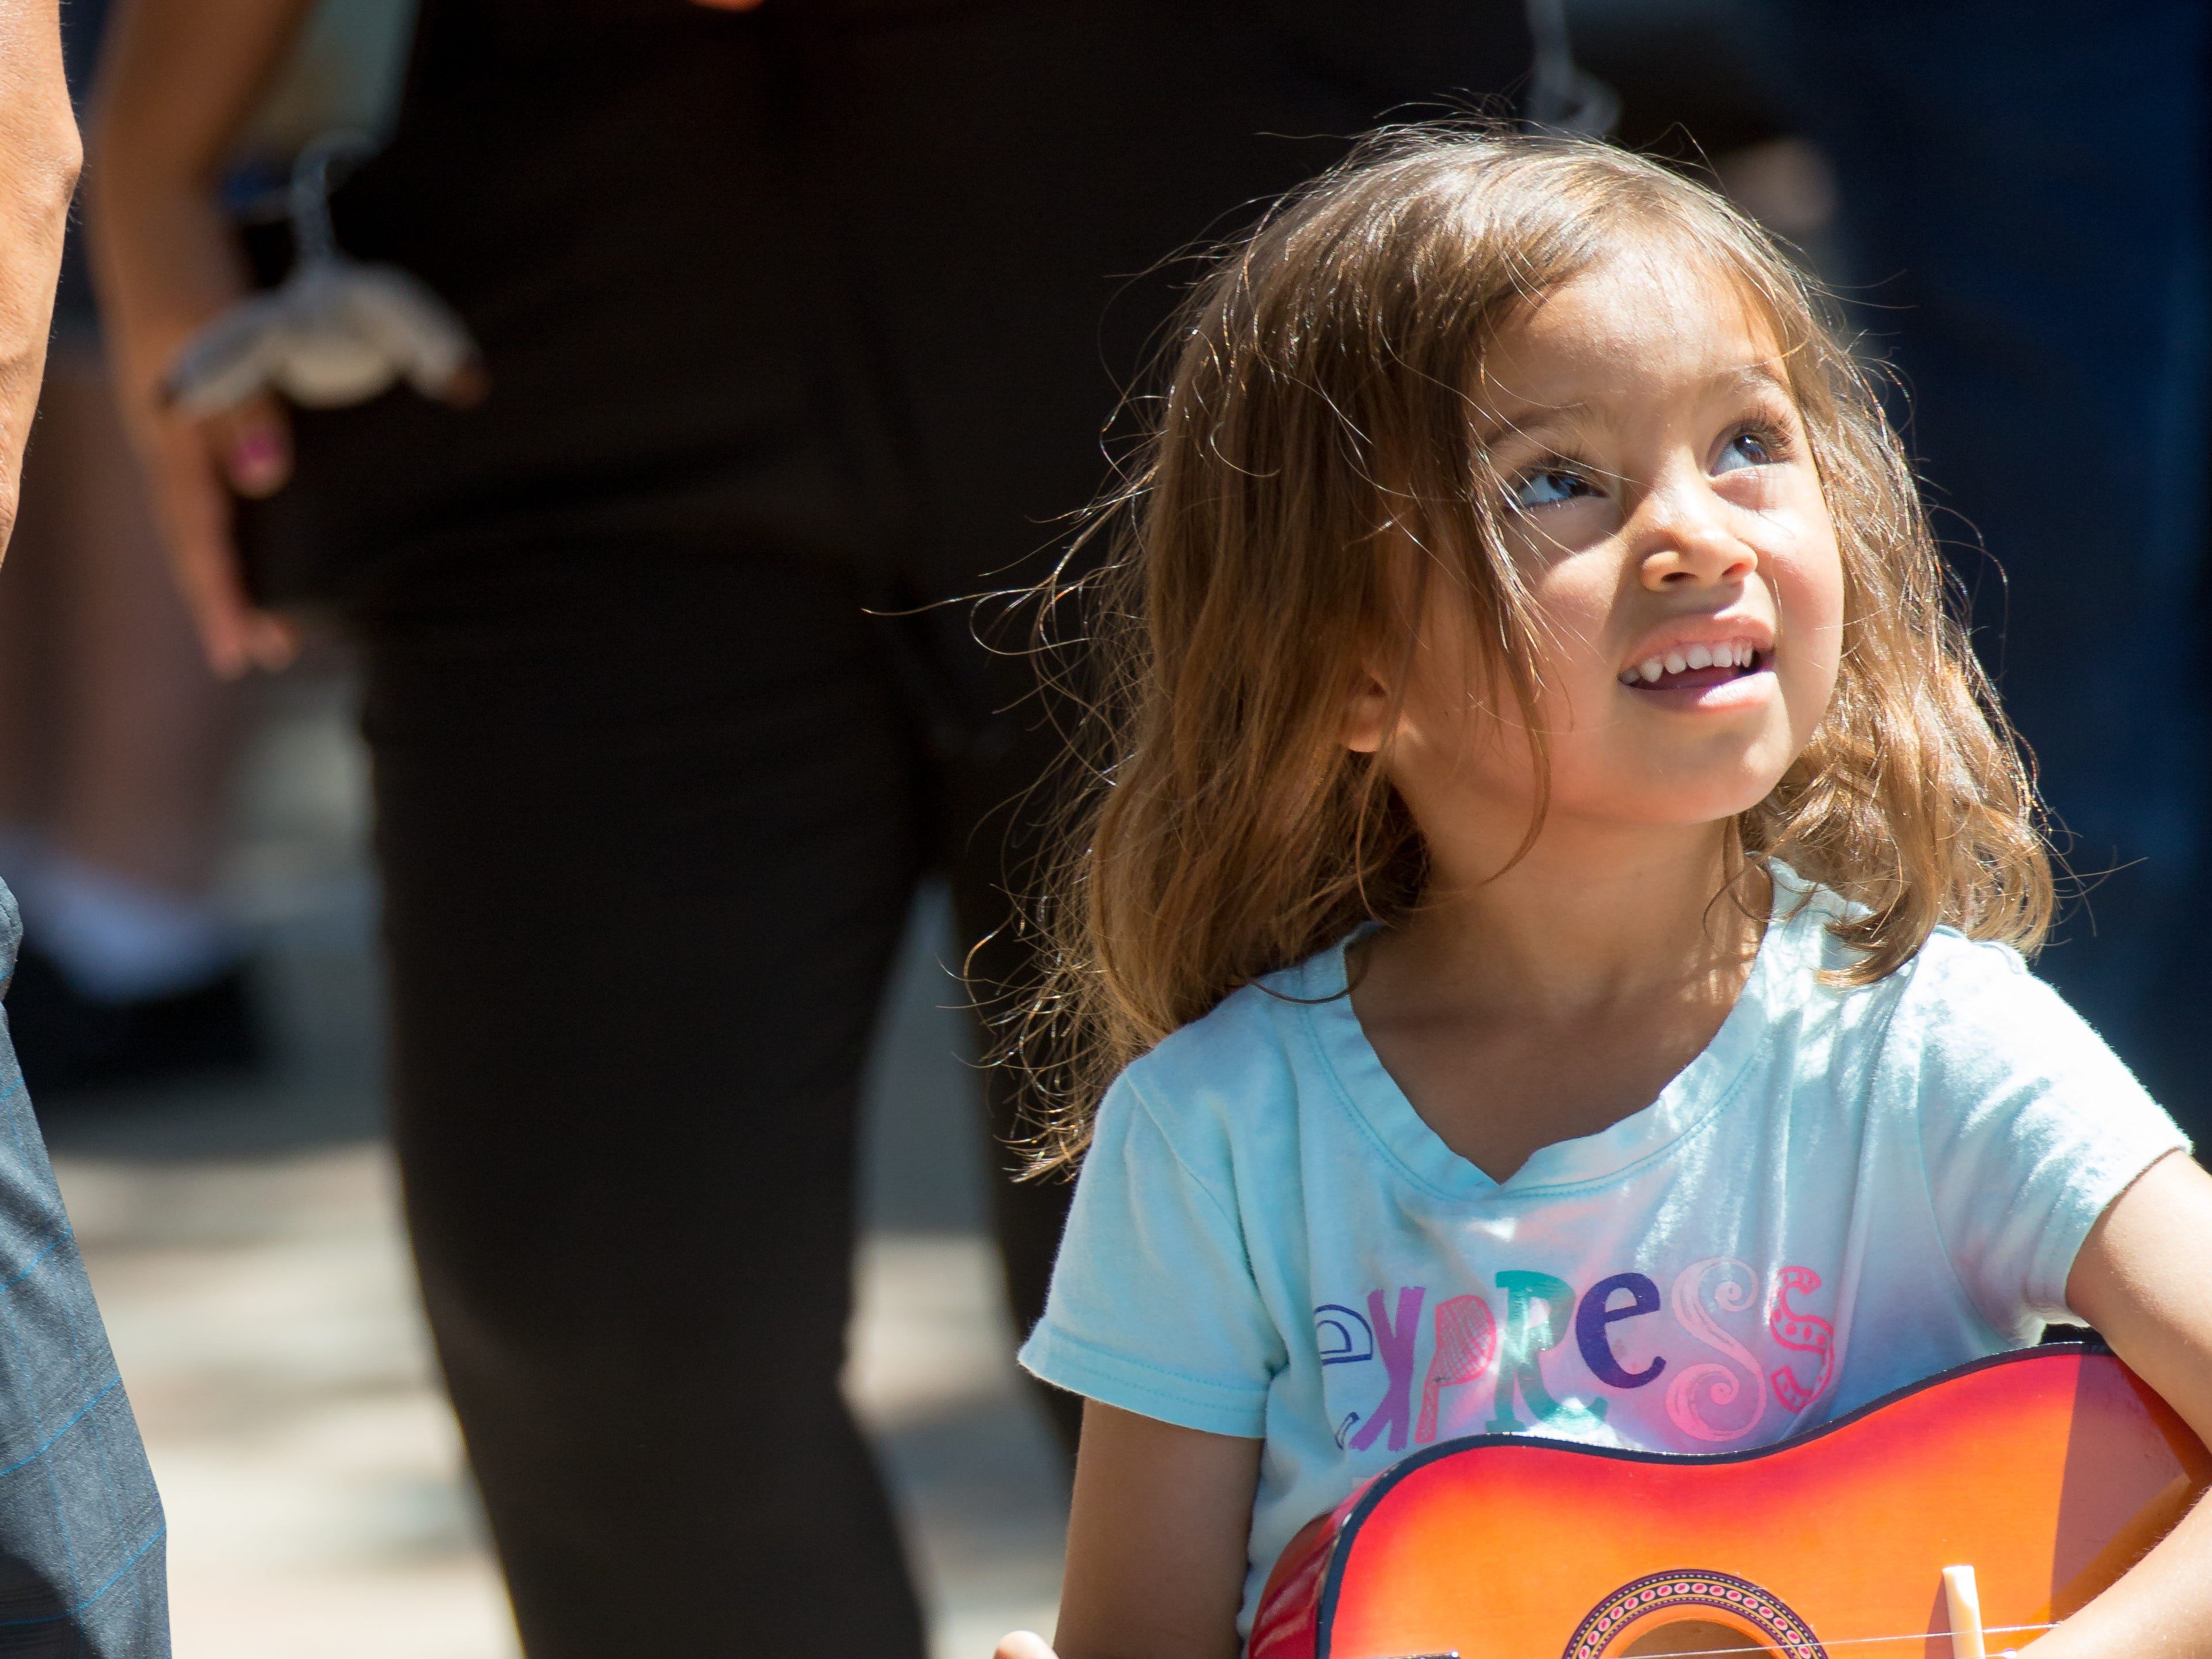 Natalie Mumez, 5, of Las Cruces, plays with her toy guitar on Sunday, September 16, 2018 during the Diez y Seis de Septiembre Fiesta at the Mesilla Plaza.